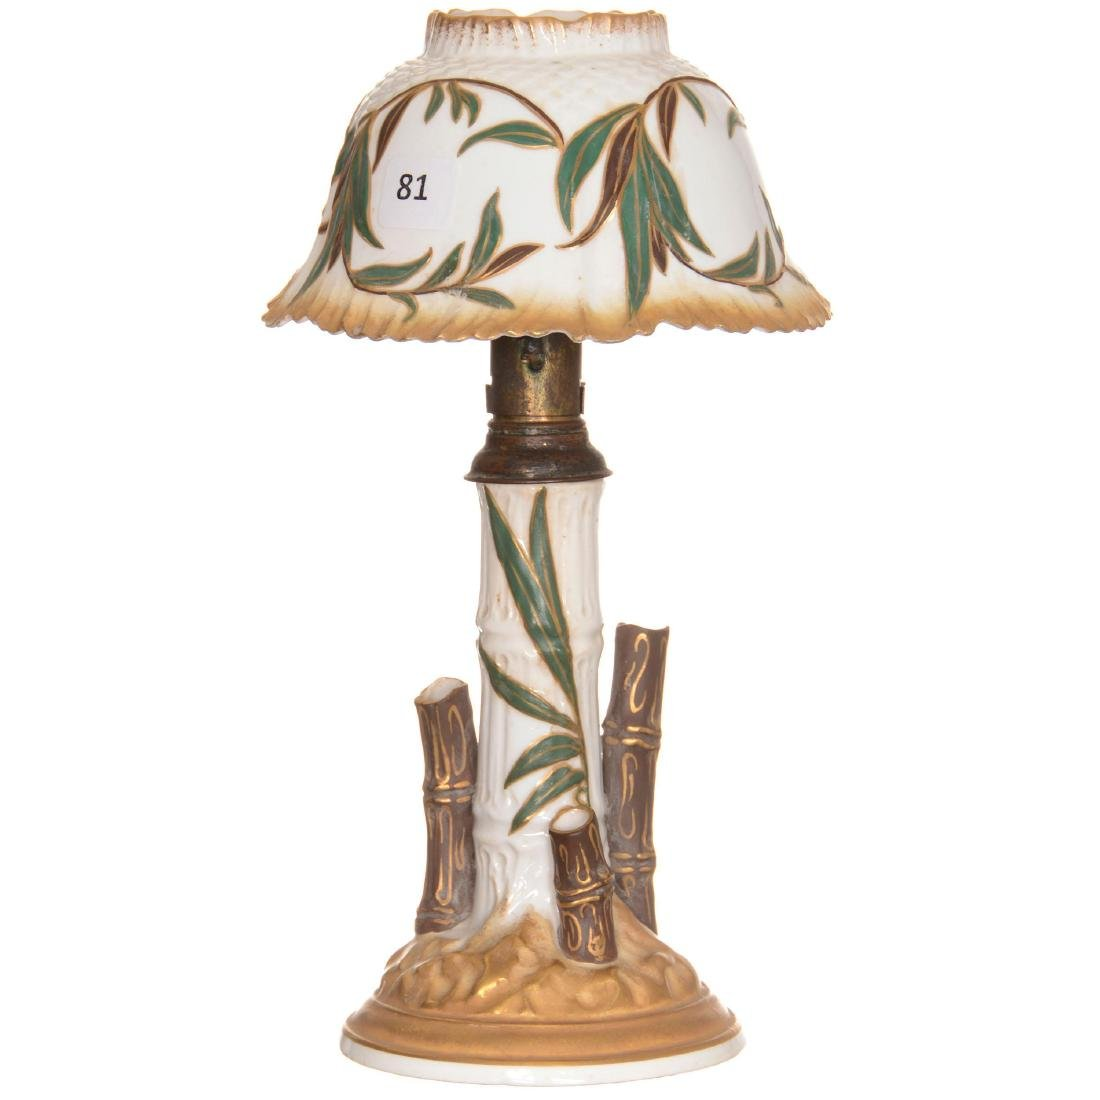 Foley China Candle Lamp